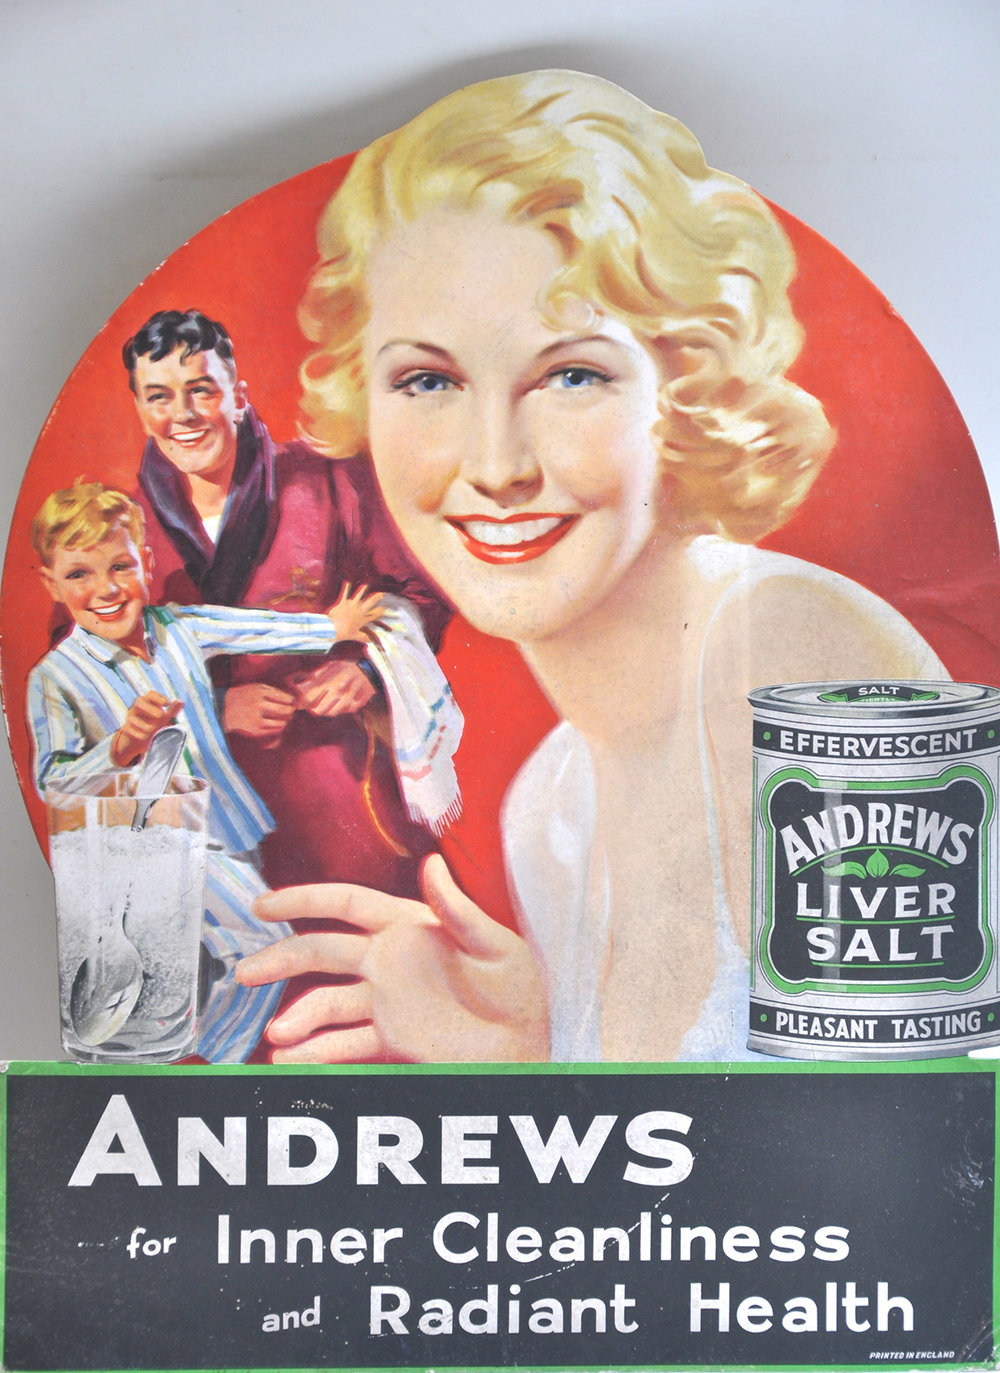 Image courtesy of Museum of Brands, London